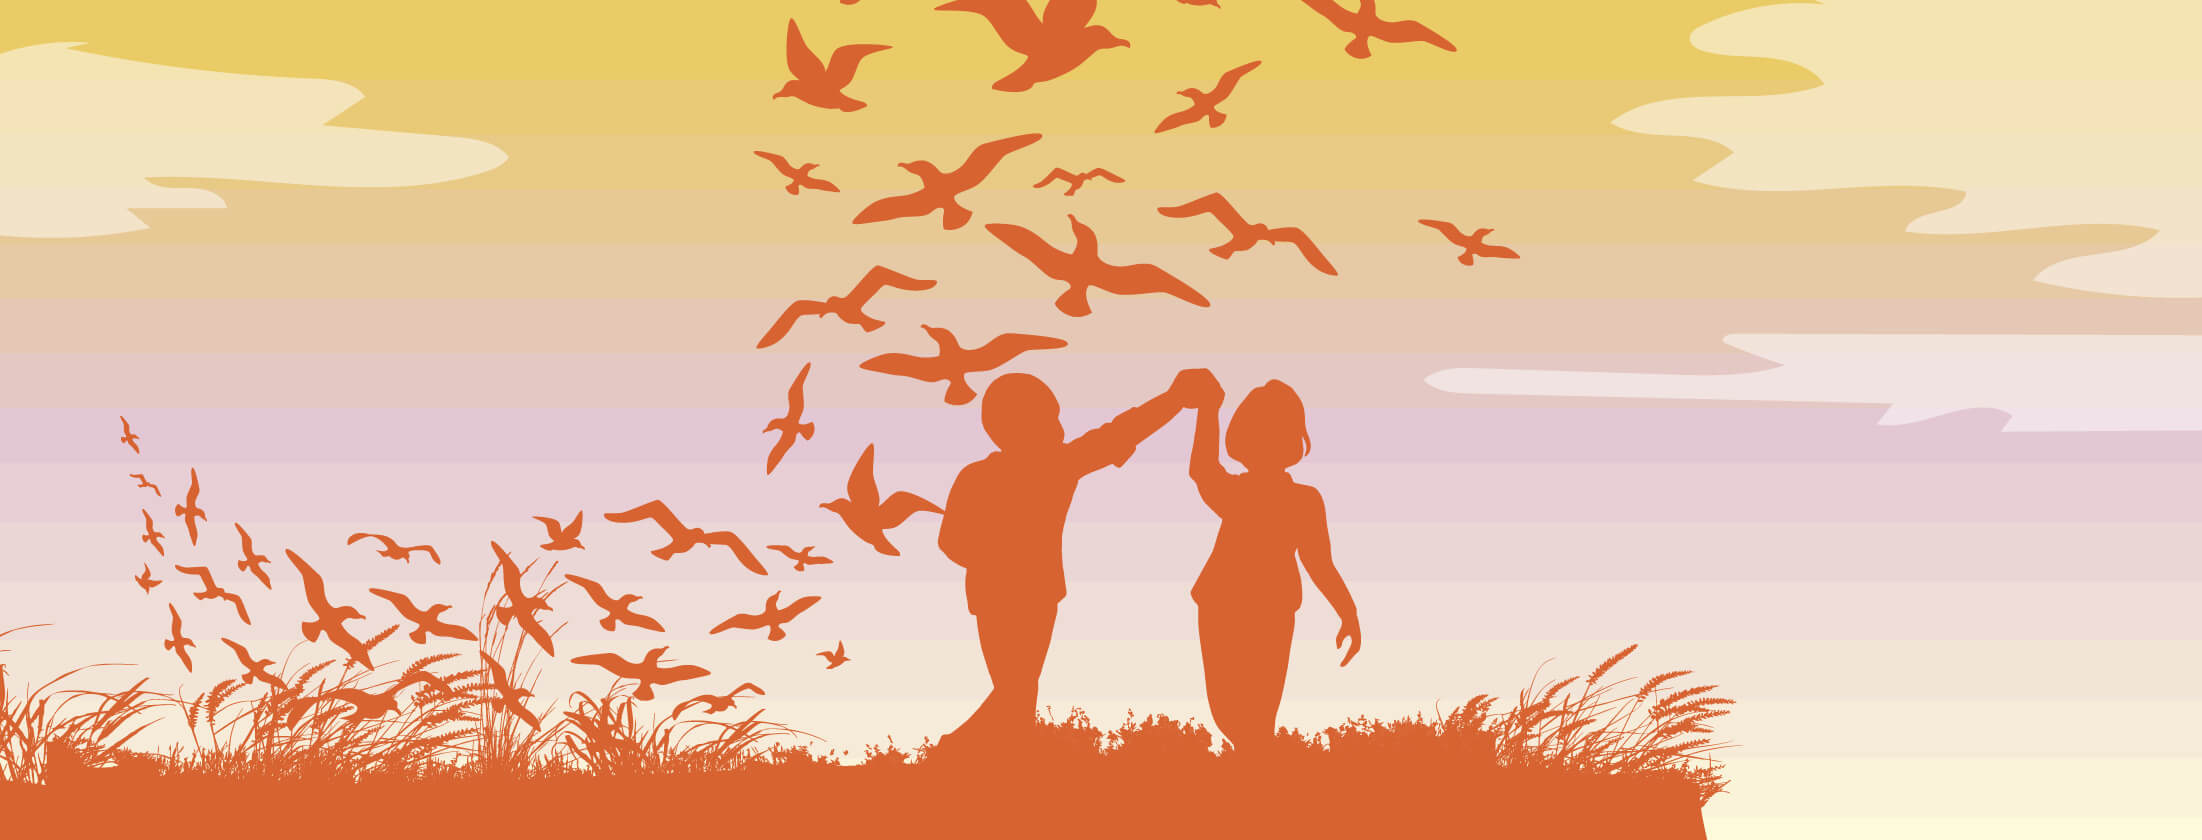 a man and woman dance on the edge of a cliff, surrounded by soaring birds